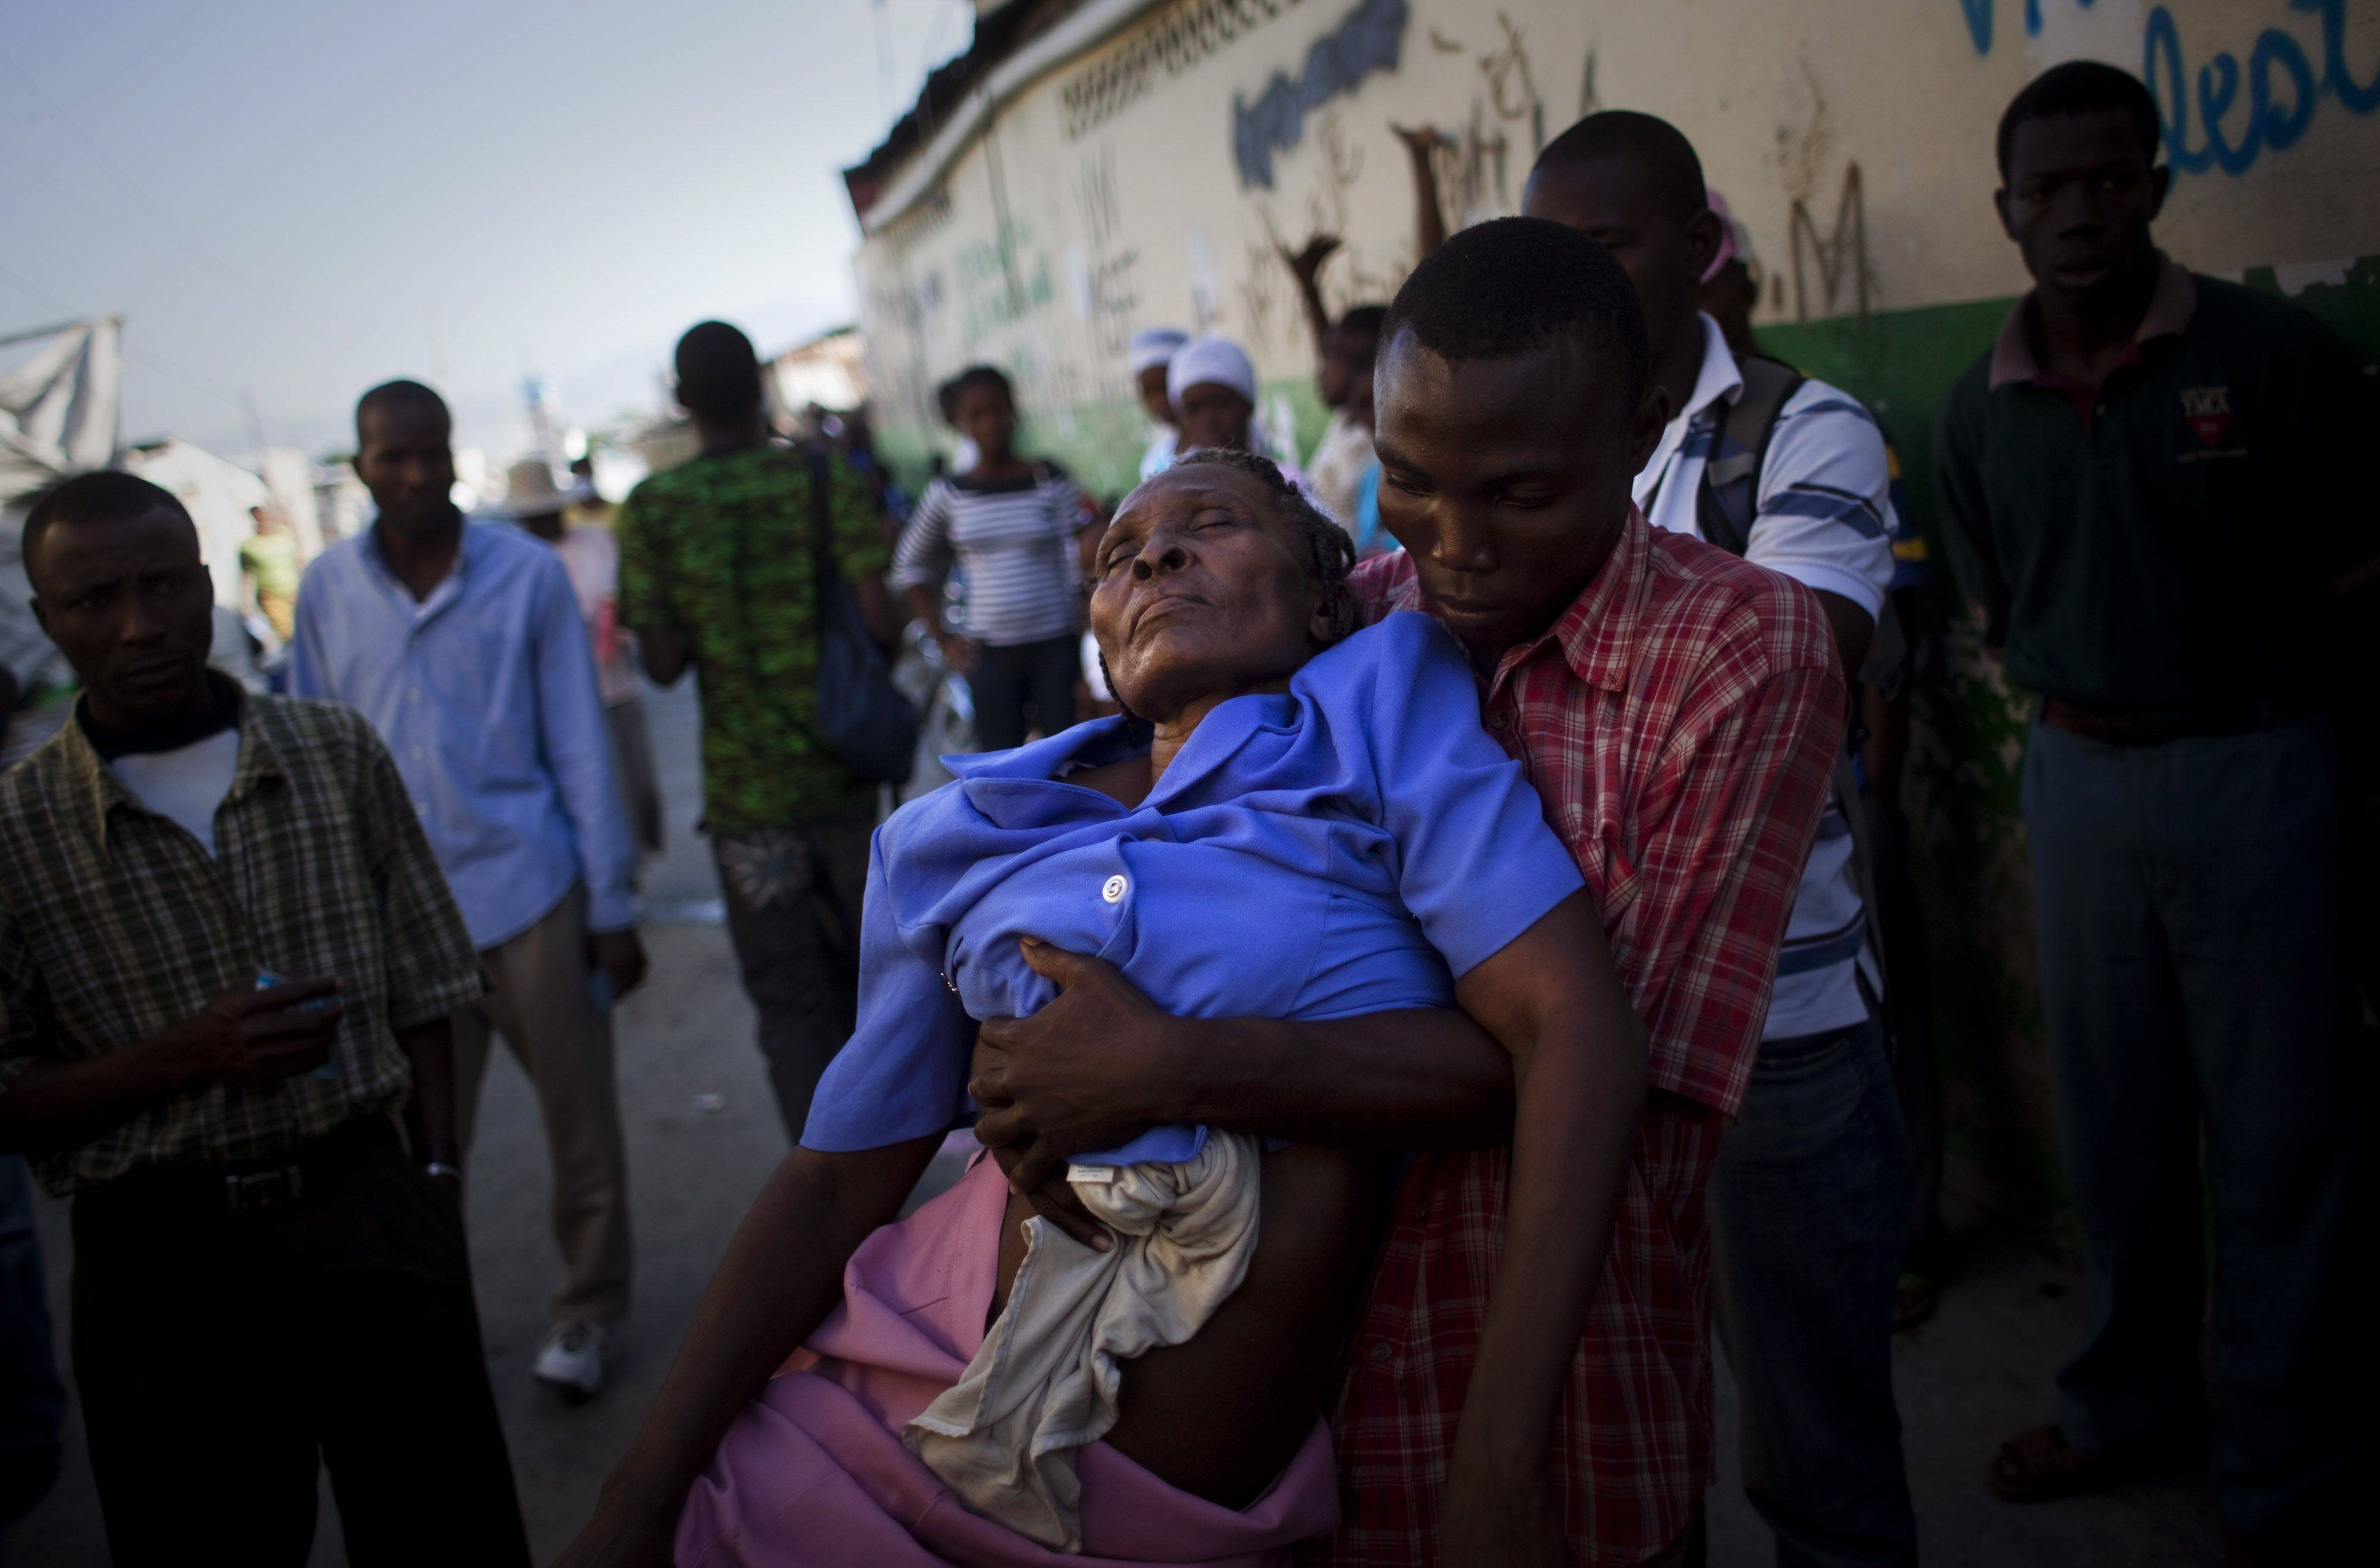 A woman suffering cholera symptoms is carried to St. Catherine hospital, run by Doctors Without Borders, in the Cite Soleil slum in Port-au-Prince, Haiti, on Monday